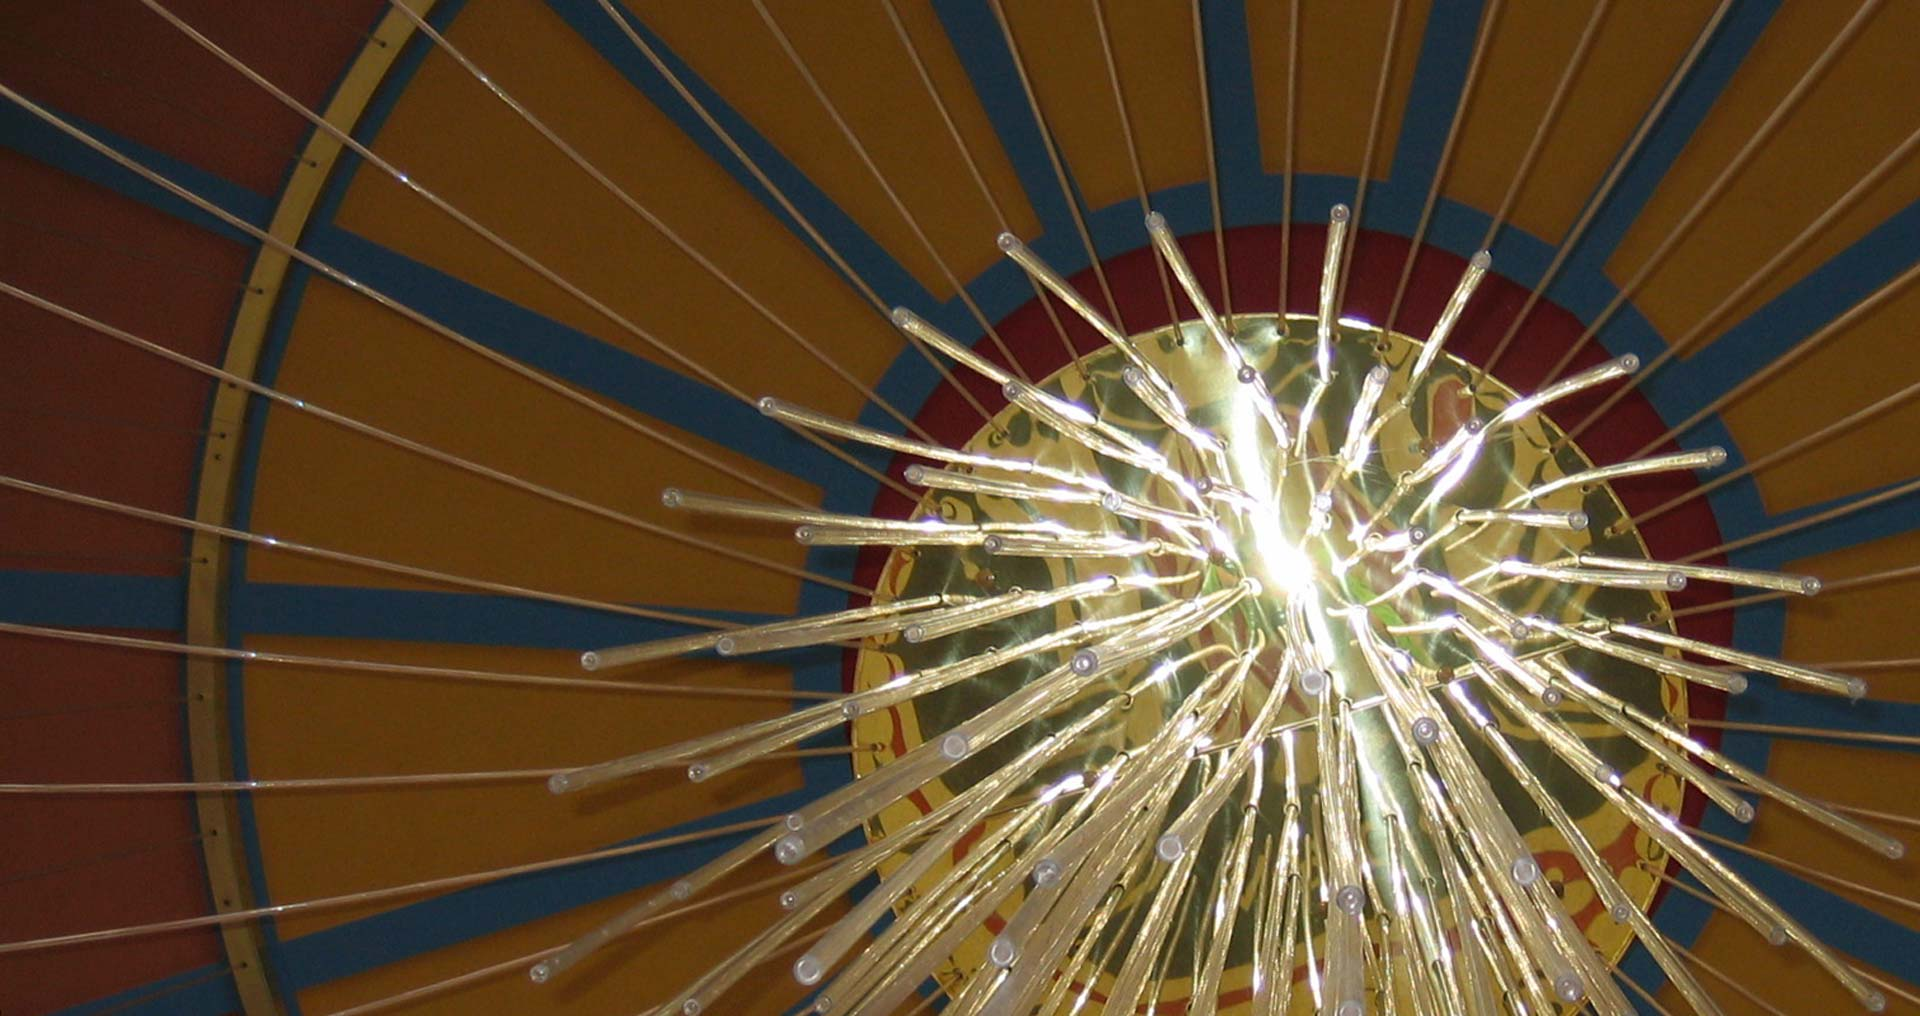 A closeup photo of the chandelier light rope details